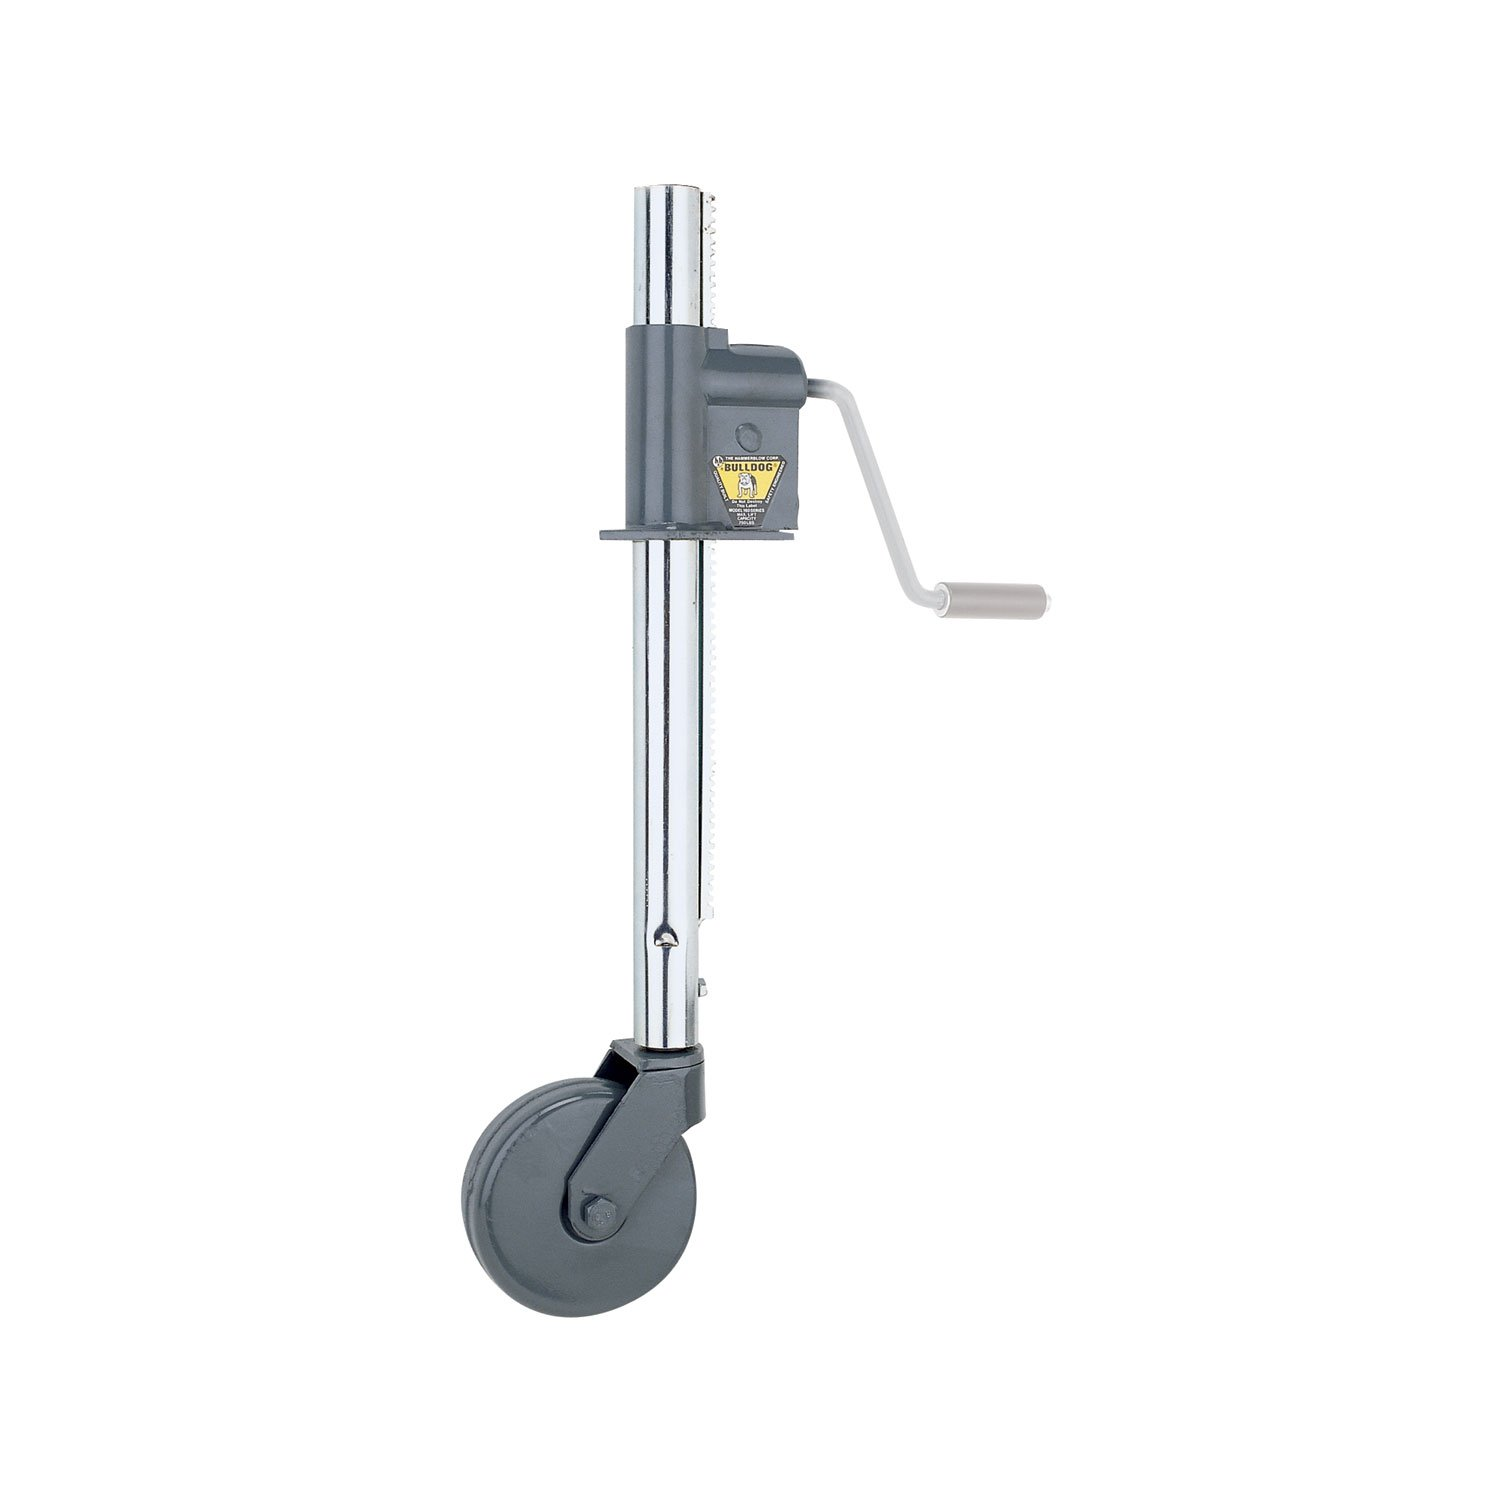 Bulldog 165W Rack/Gear Jack with 16-Inch Travel (Includes Gearbox and Rack and Post Assembly) by Bulldog